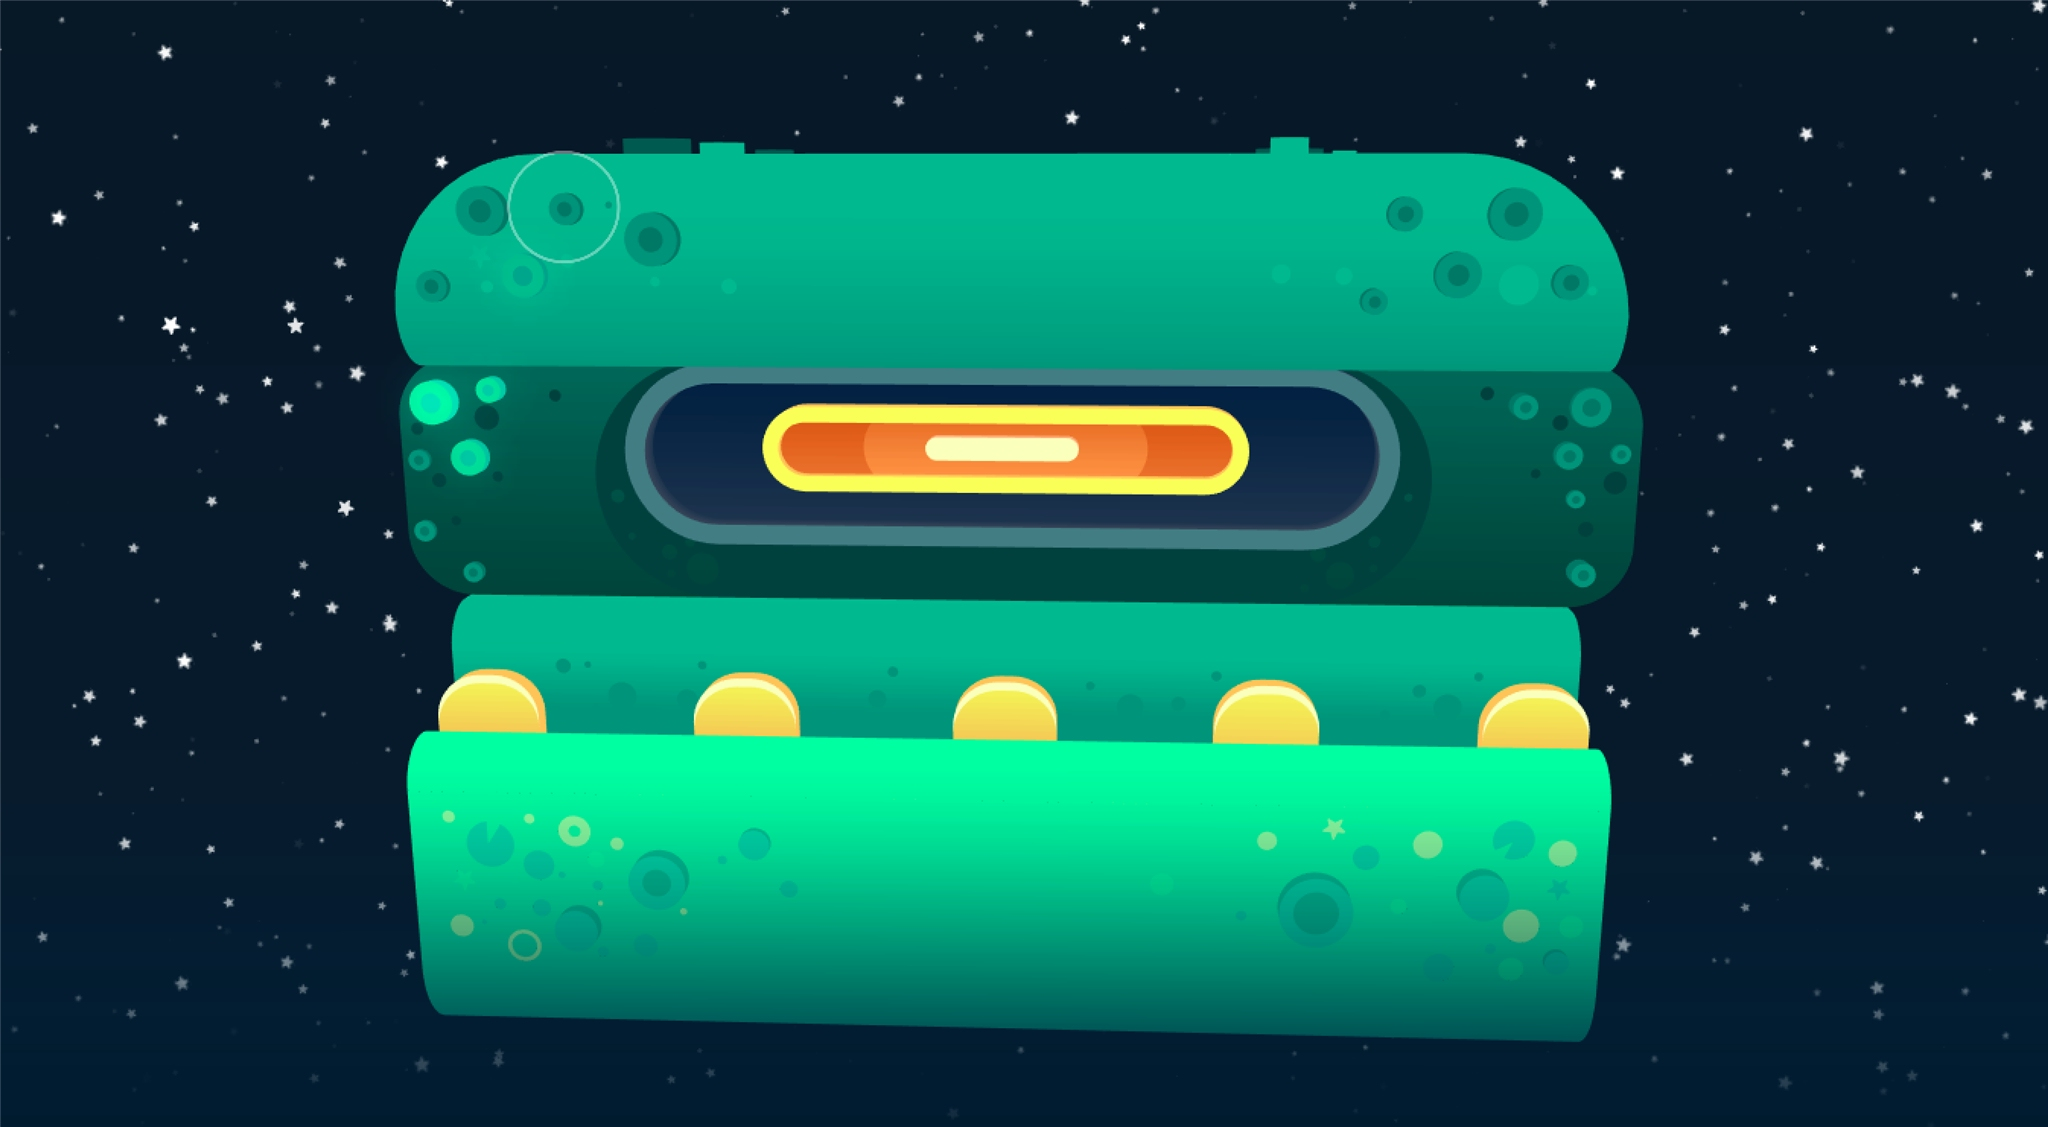 Explore the inner worlds of robot heads when GNOG comes to iOS next year